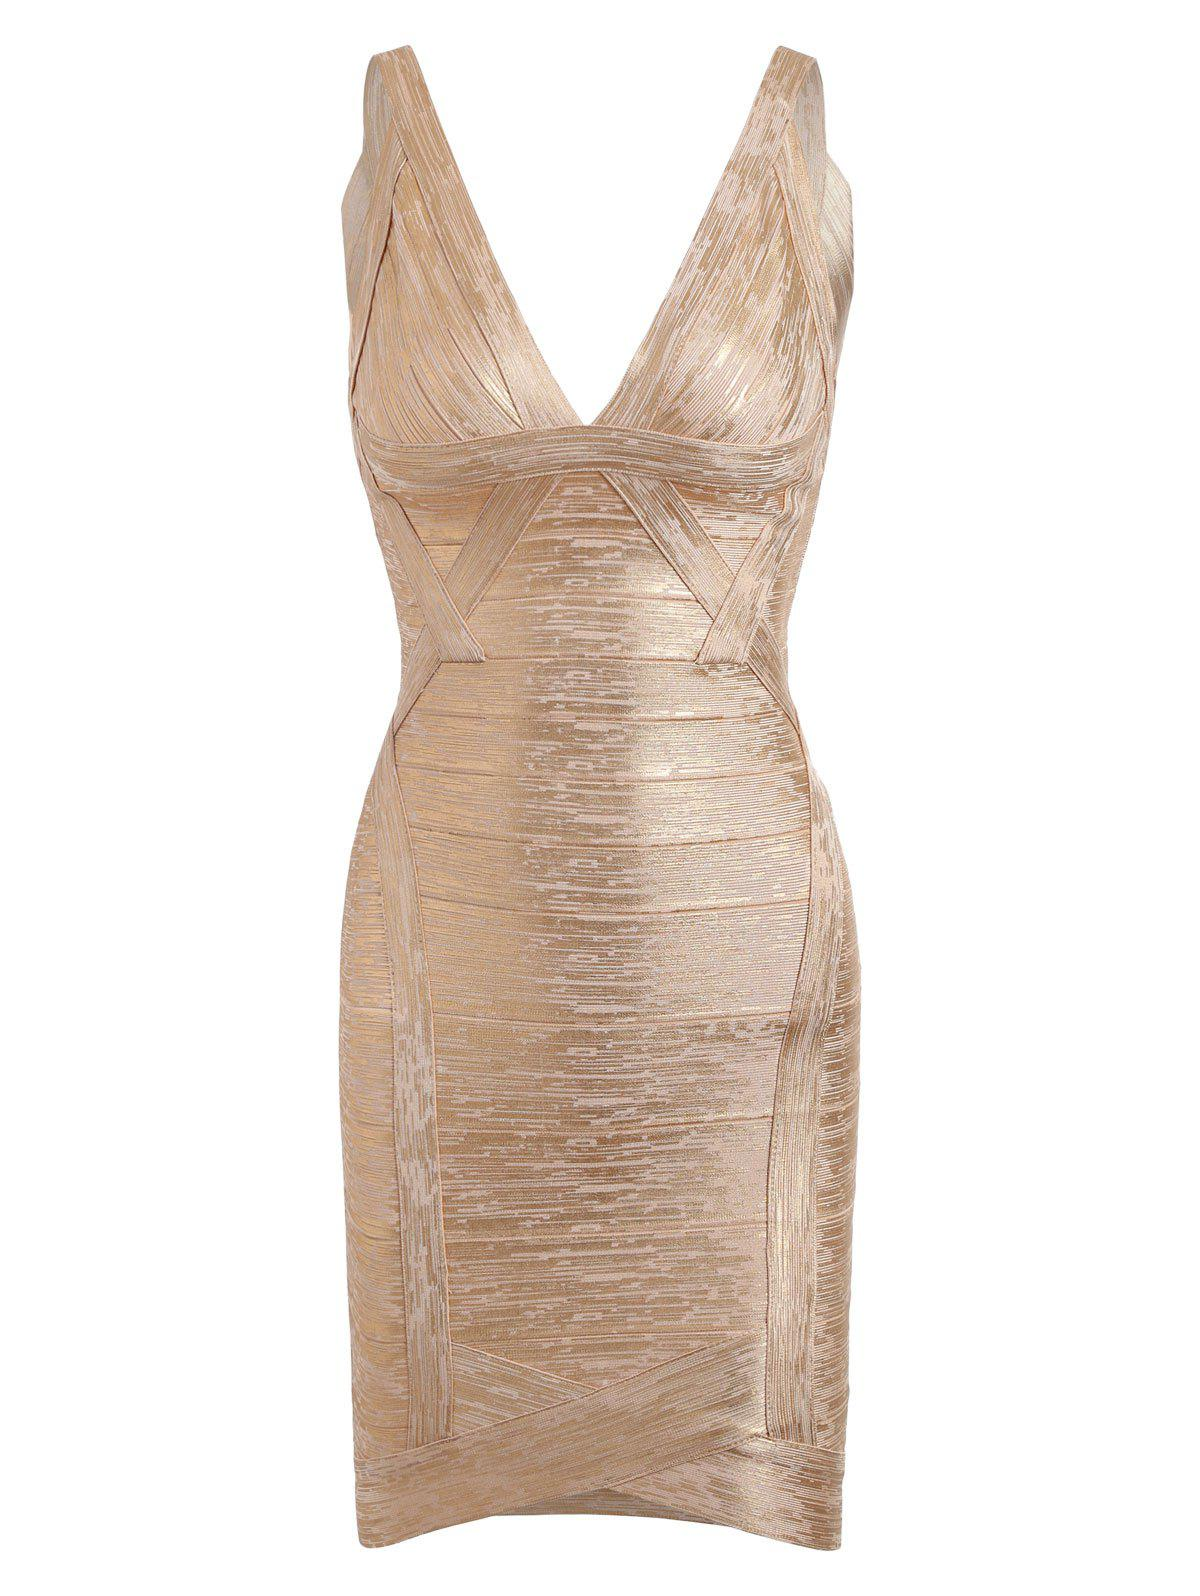 V Neck Bronzing Club Bandage Dress - GOLDEN M